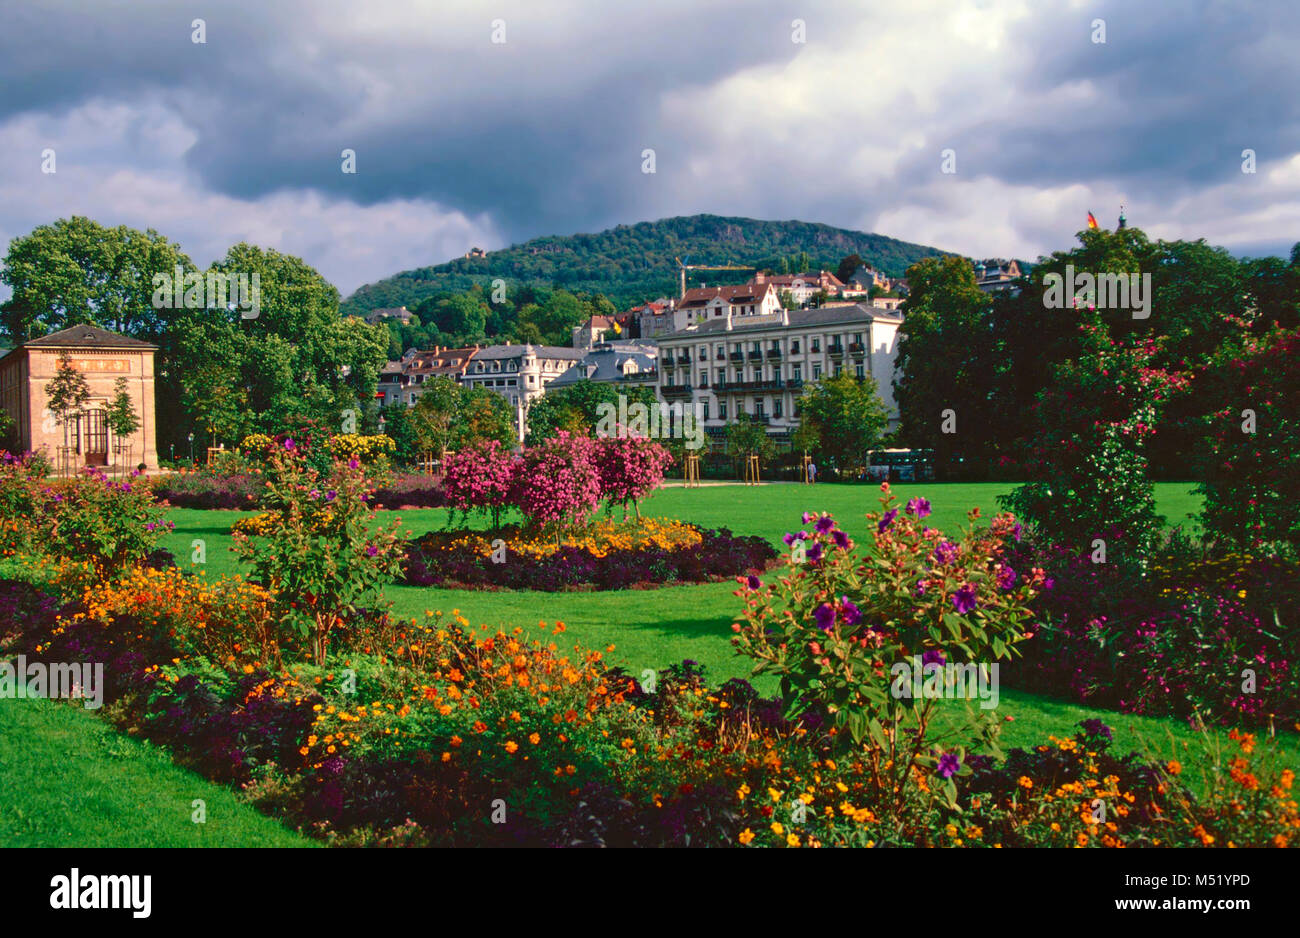 Trinkhalle Pump House and casino,Baden Baden,Germany Stock Photo